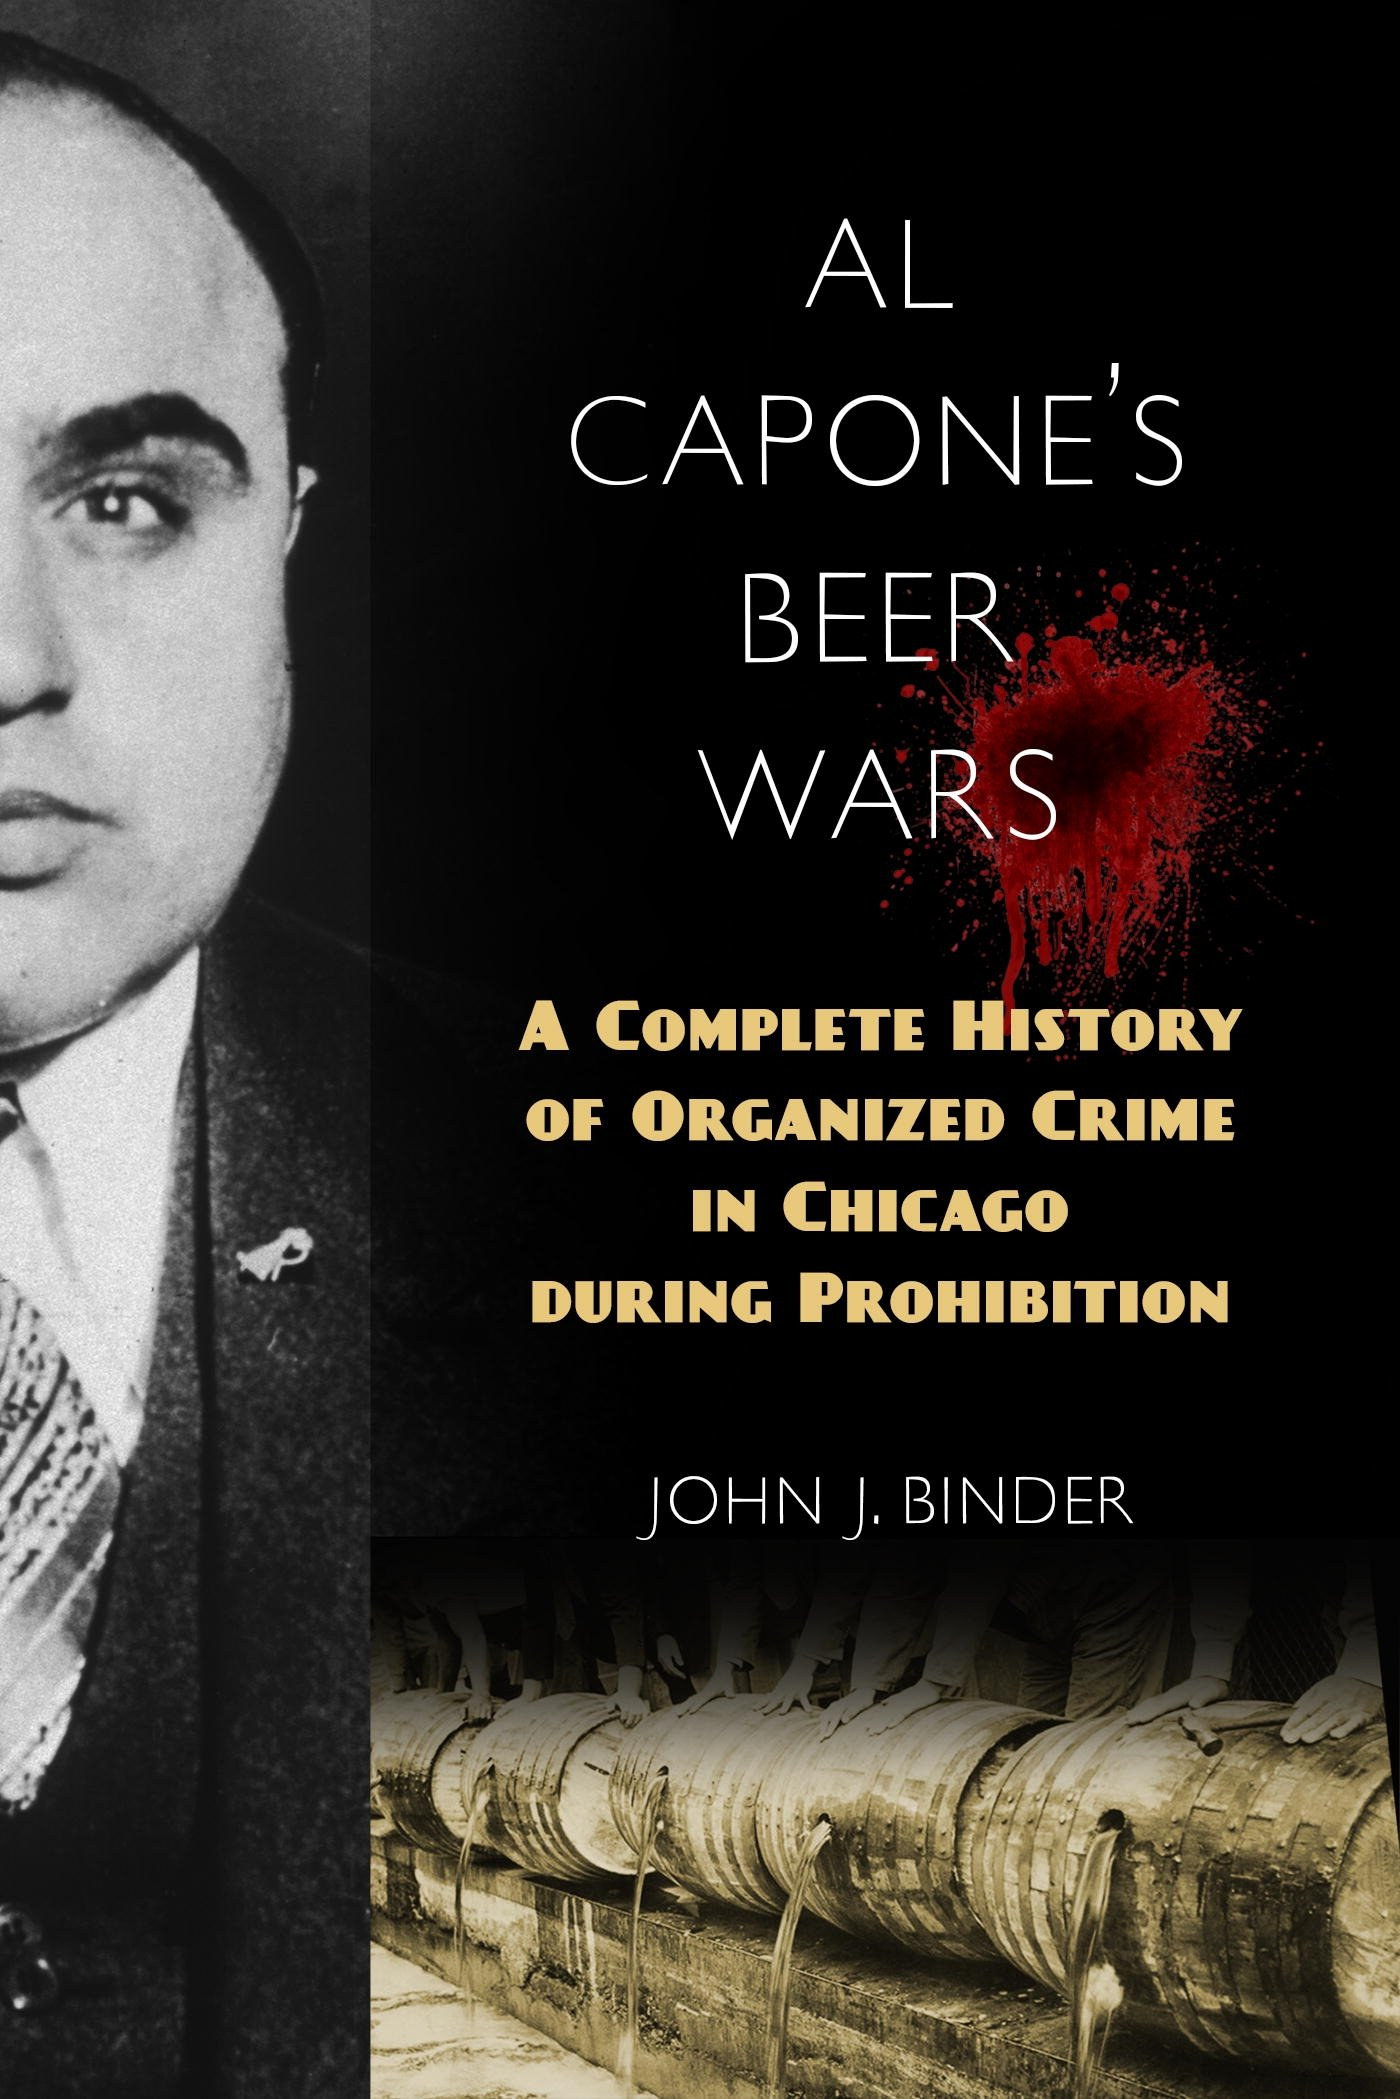 Al capones beer wars a complete history of organized crime in al capones beer wars a complete history of organized crime in chicago during prohibition john j binder 9781633882850 amazon books fandeluxe Choice Image